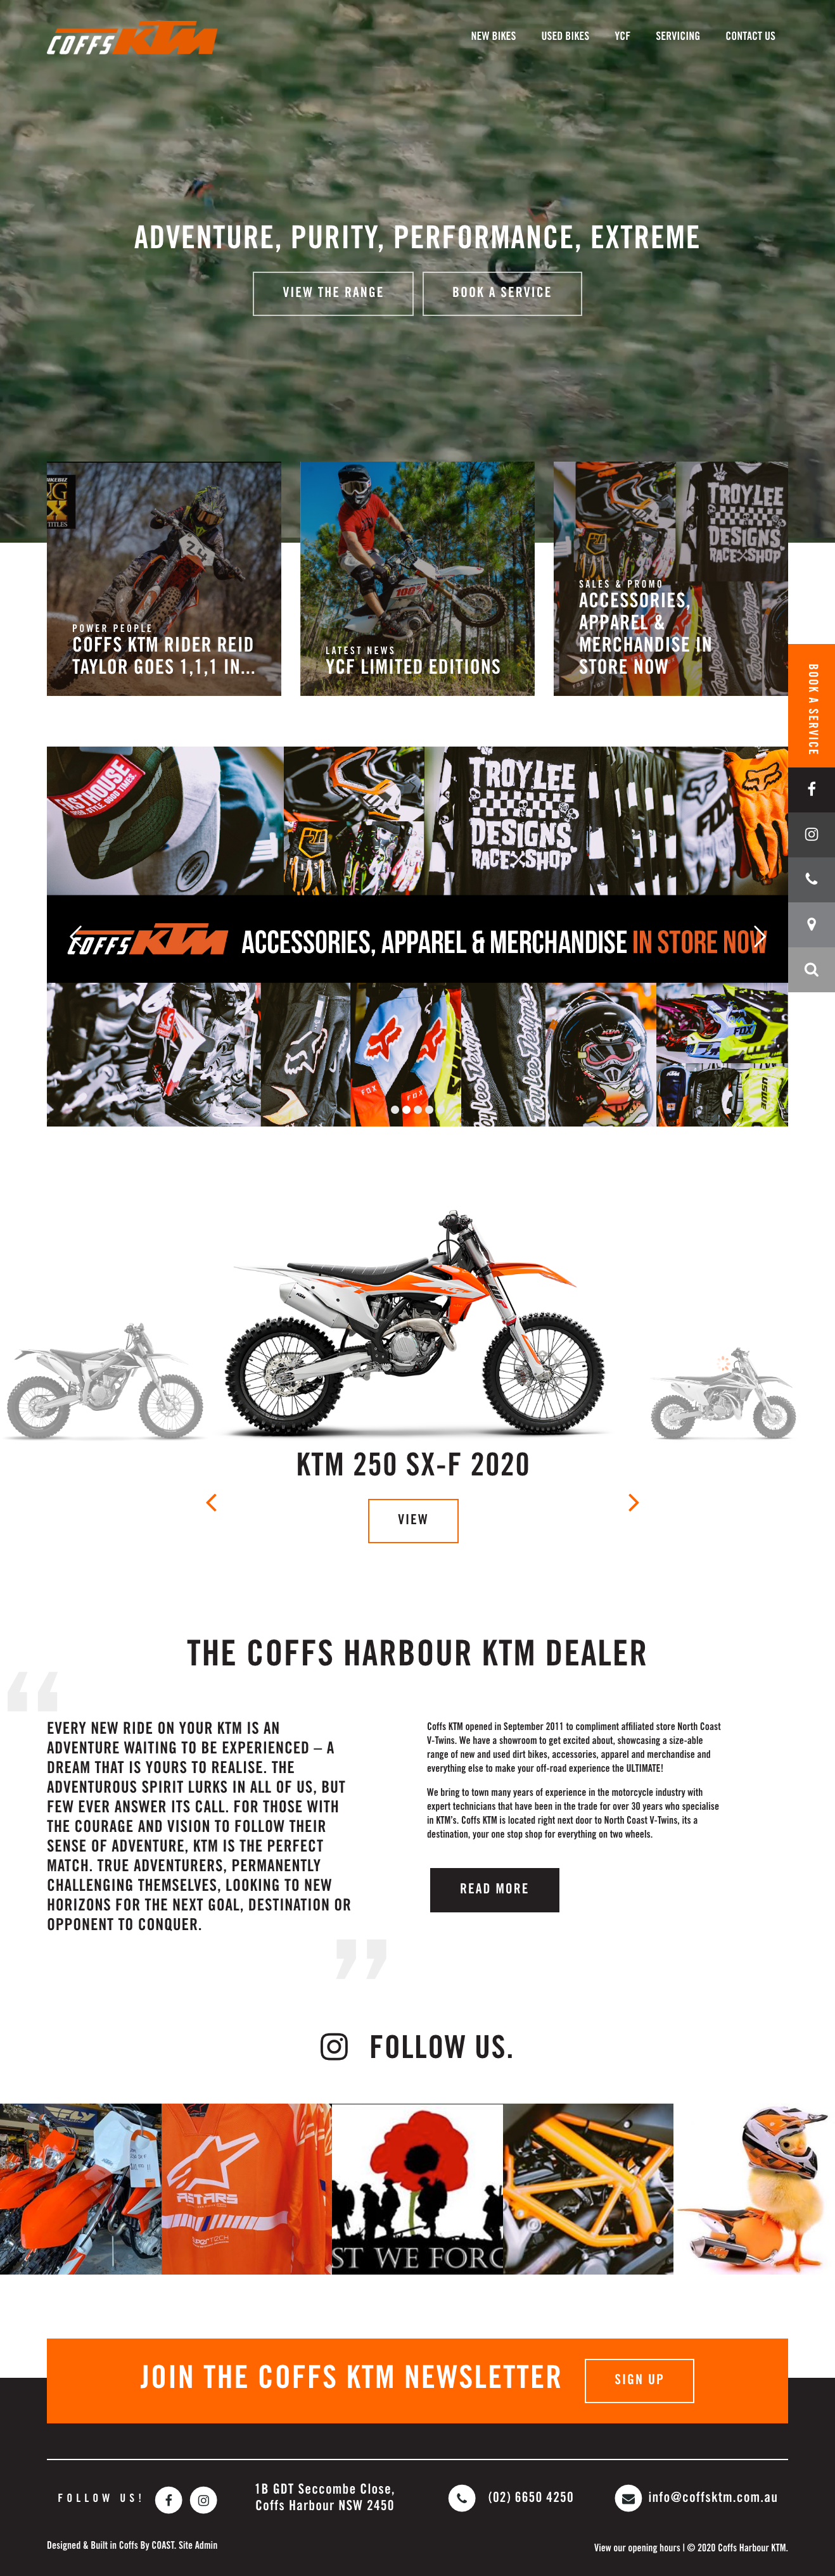 Website Design & Development for Coffs KTM